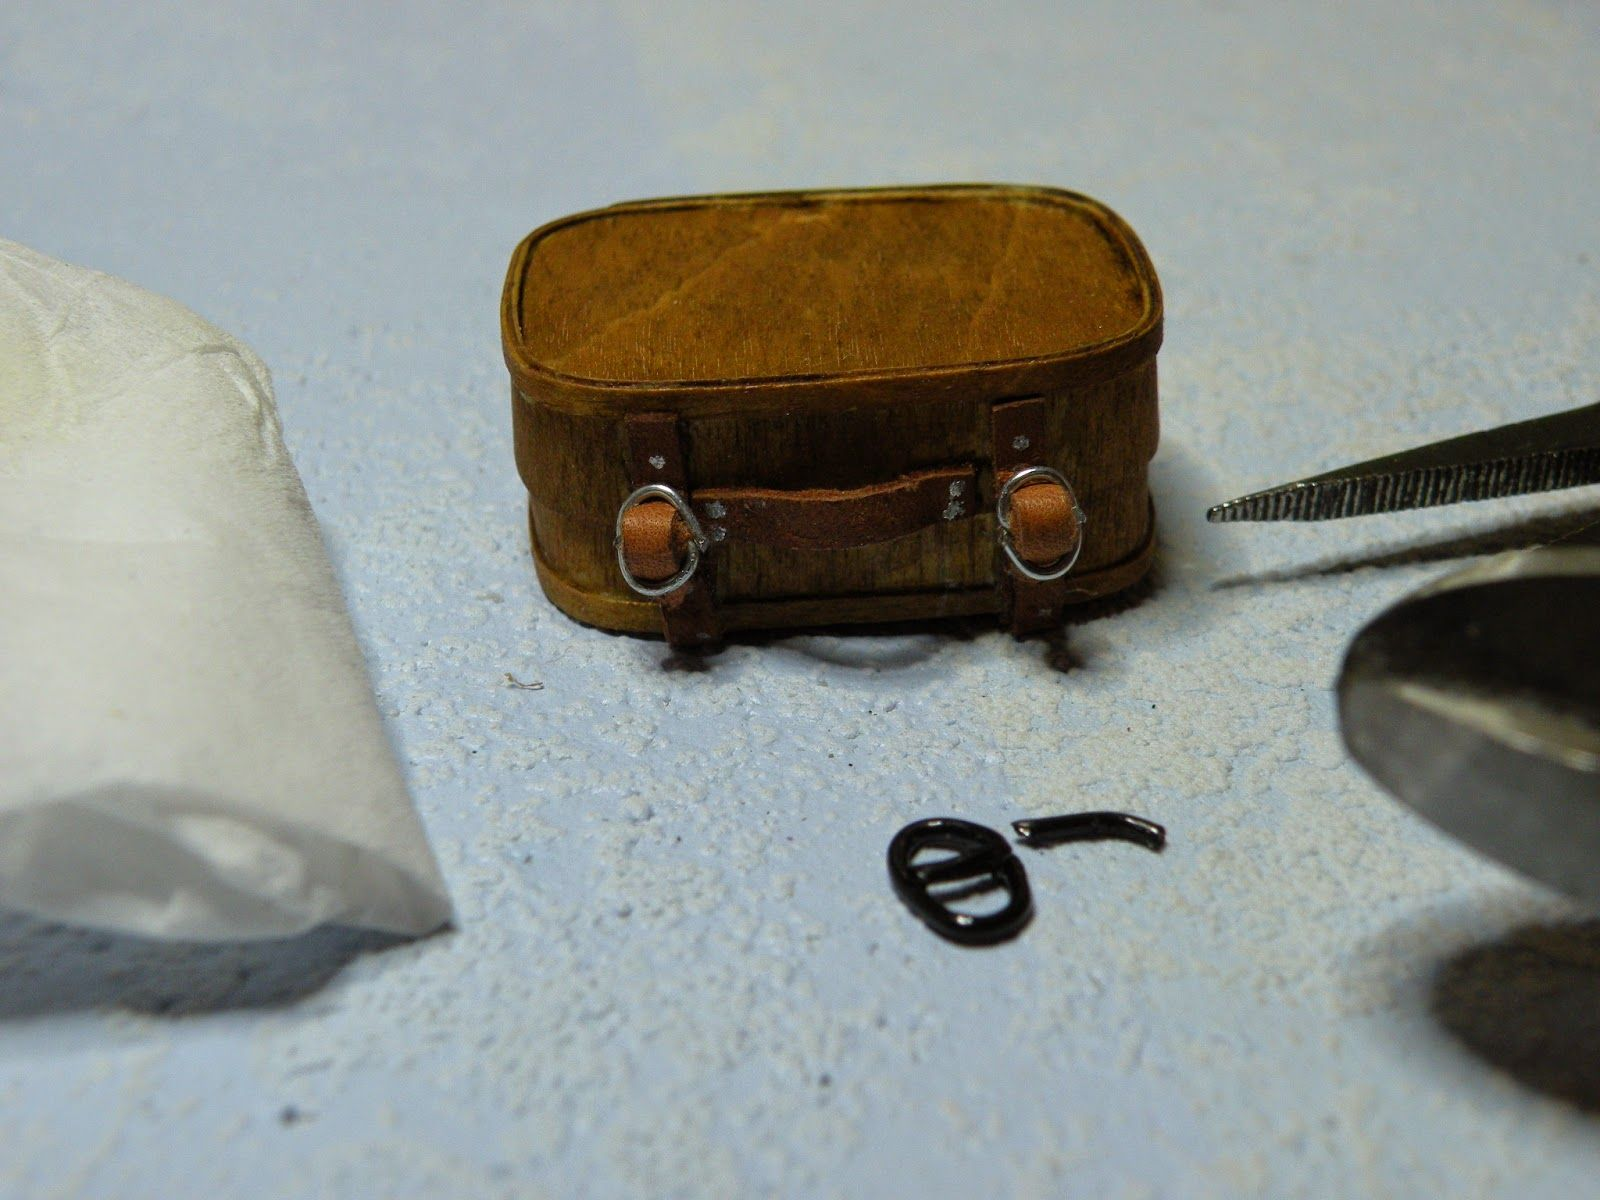 SMALL HOUSE, BIG WORLD: tiny buckles for belts, bags, etc. from ...